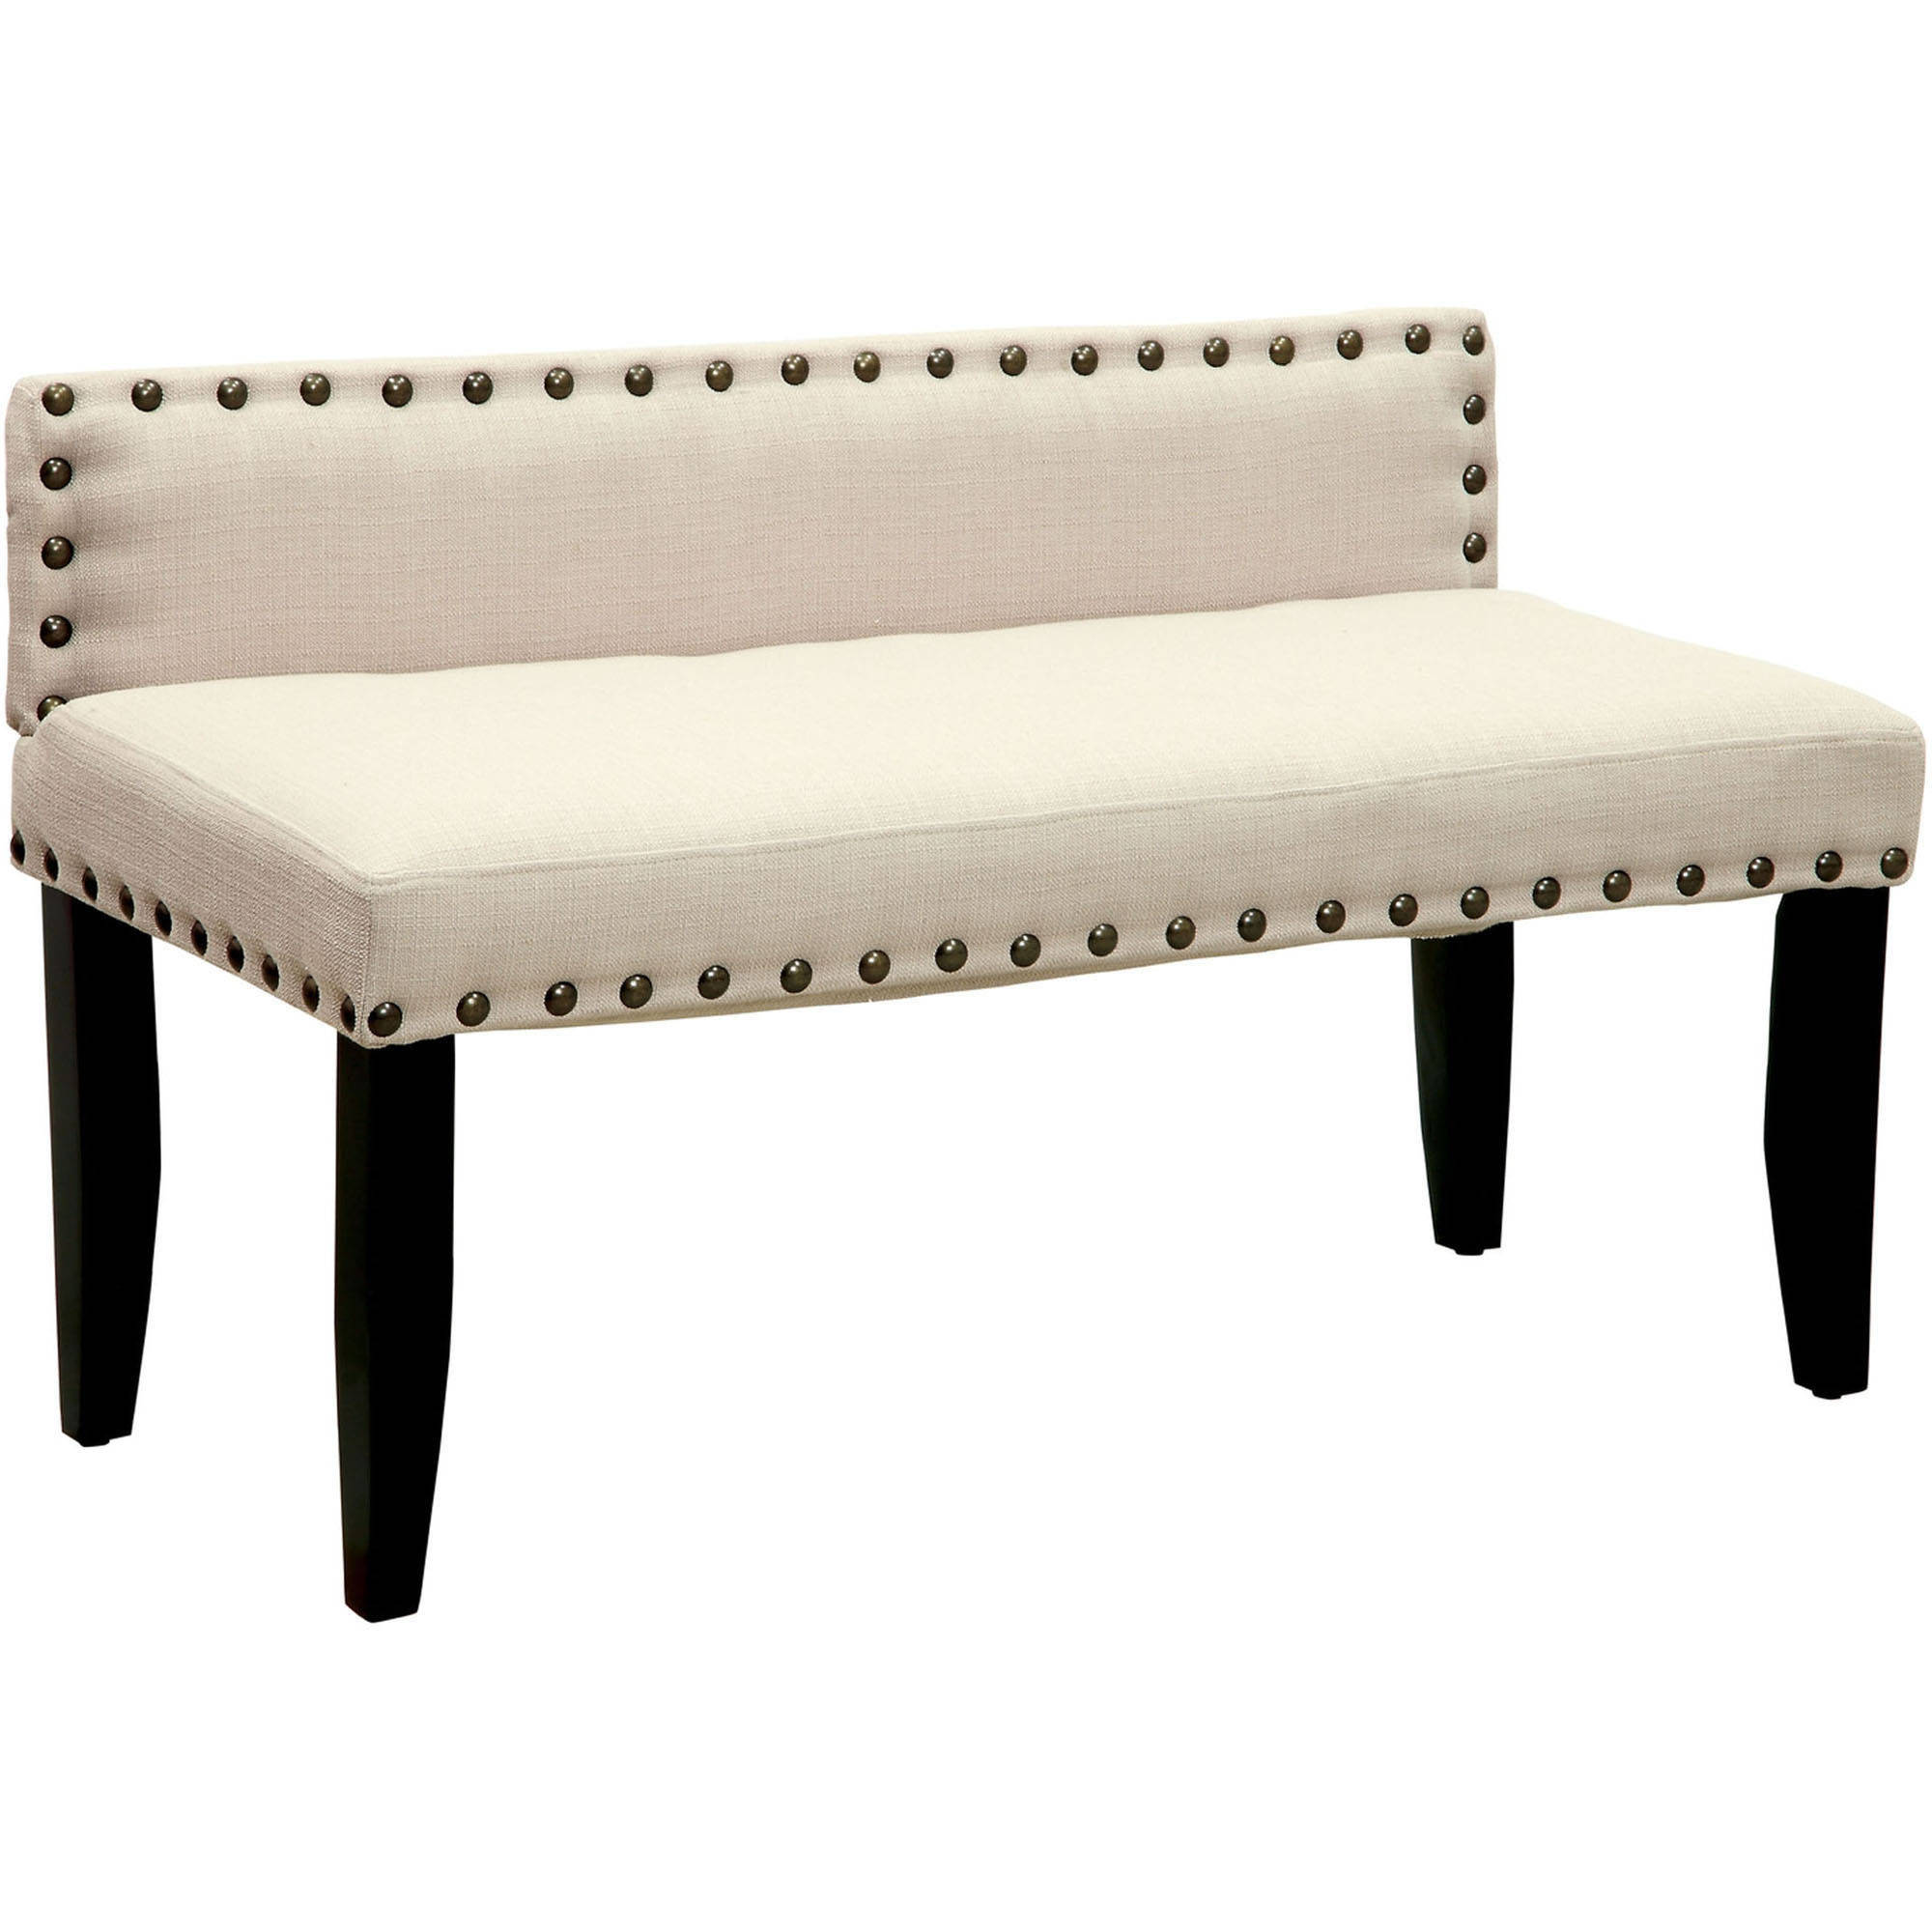 "Furniture of America Mason Modern 42"" Fabric Backed Bench with Nailhead Trim, Multiple Colors"